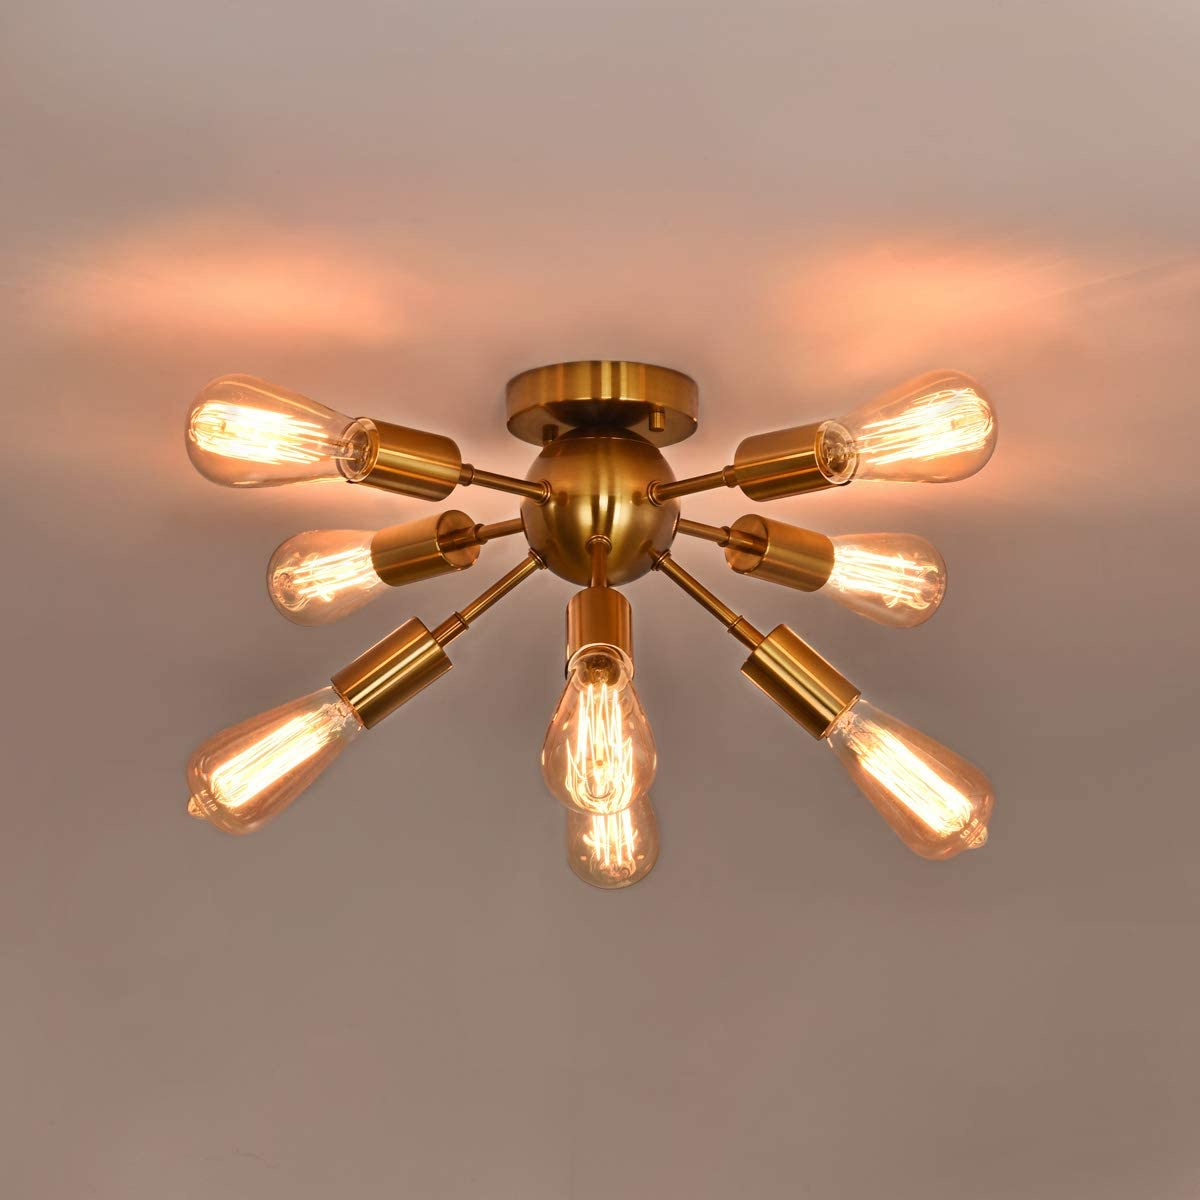 Benny Lighting Modern Sputnik Chandeliers 8-Light,Brushed Brass Industrial Semi Flush Mount Ceiling Light, Gold Mid-Century Light Fixtures for Bedroom Dinner Room